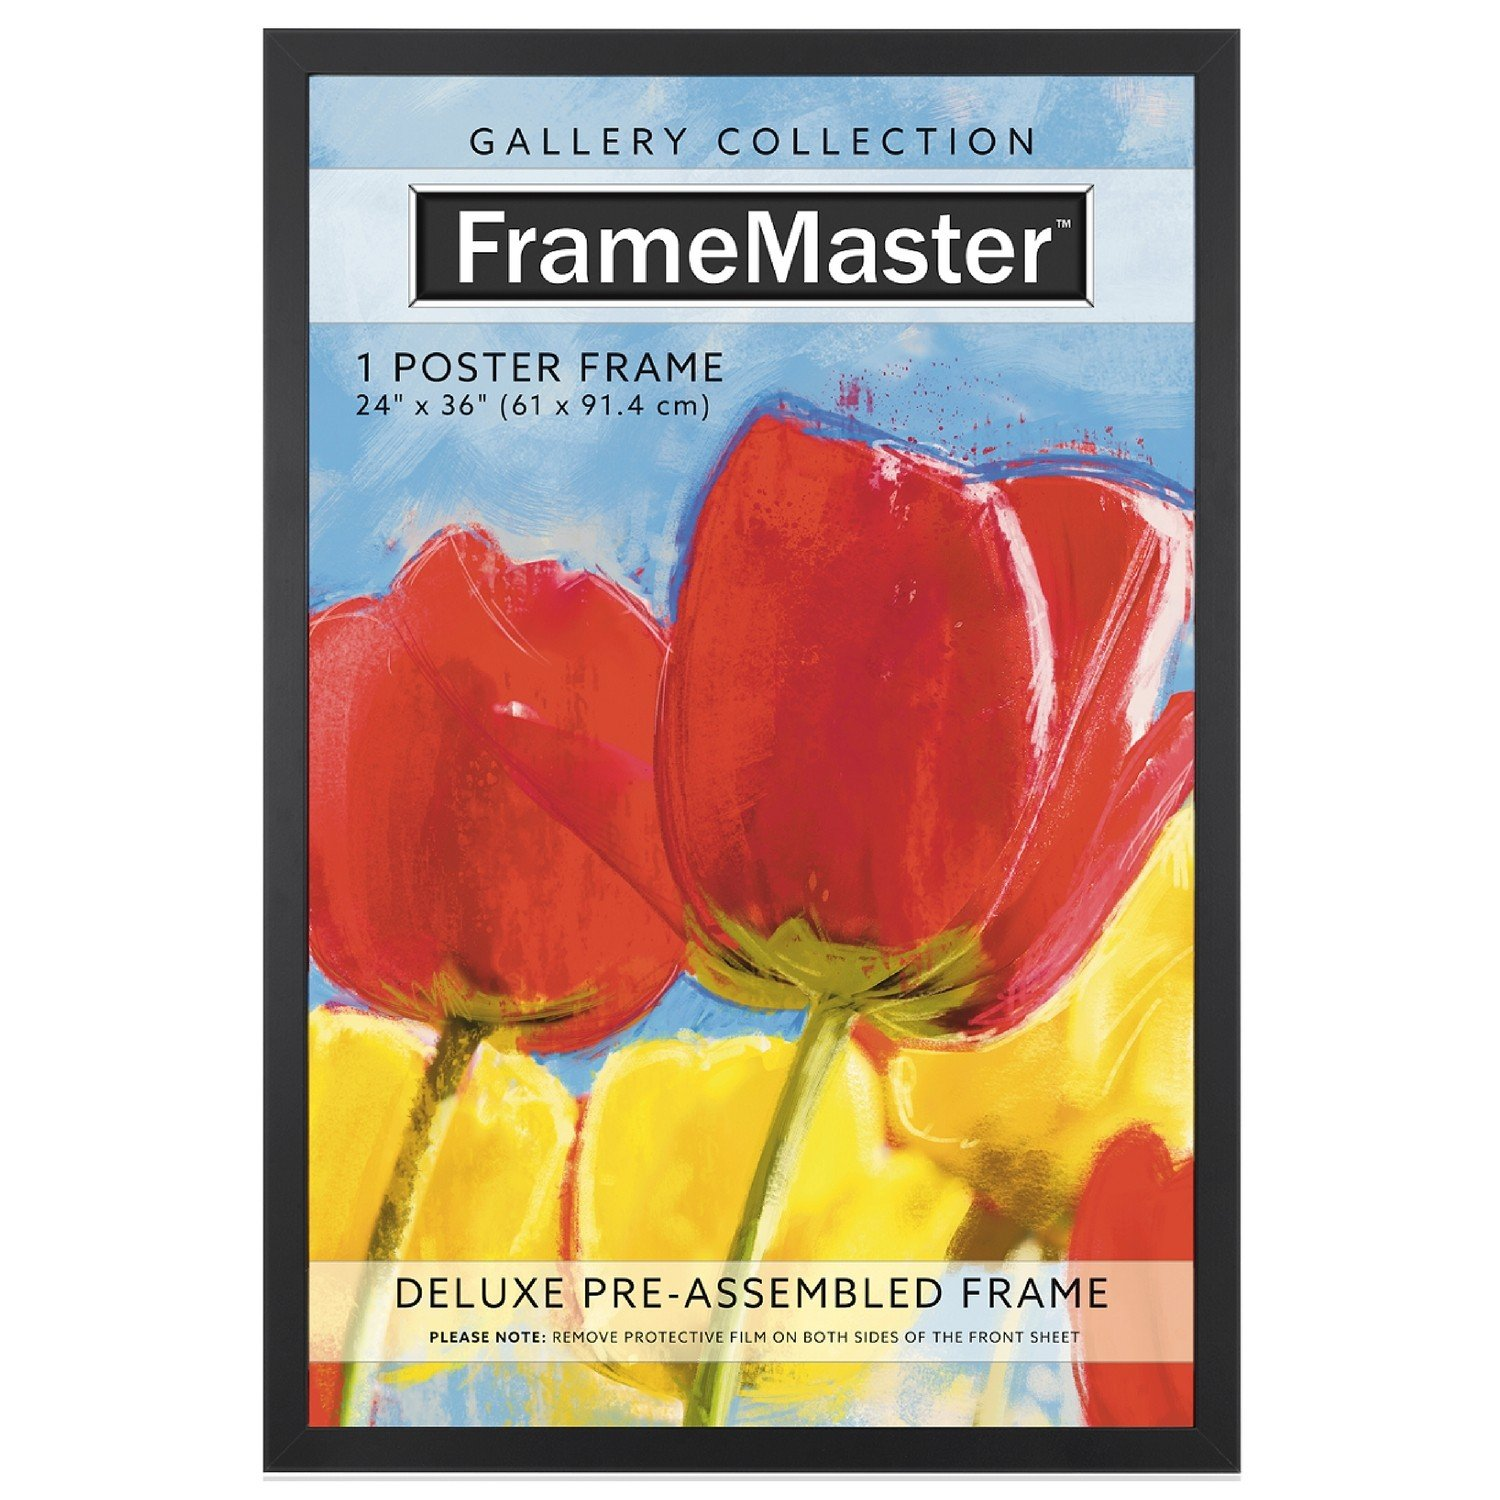 framemaster 24x36 poster frame black wood composite gallery edition